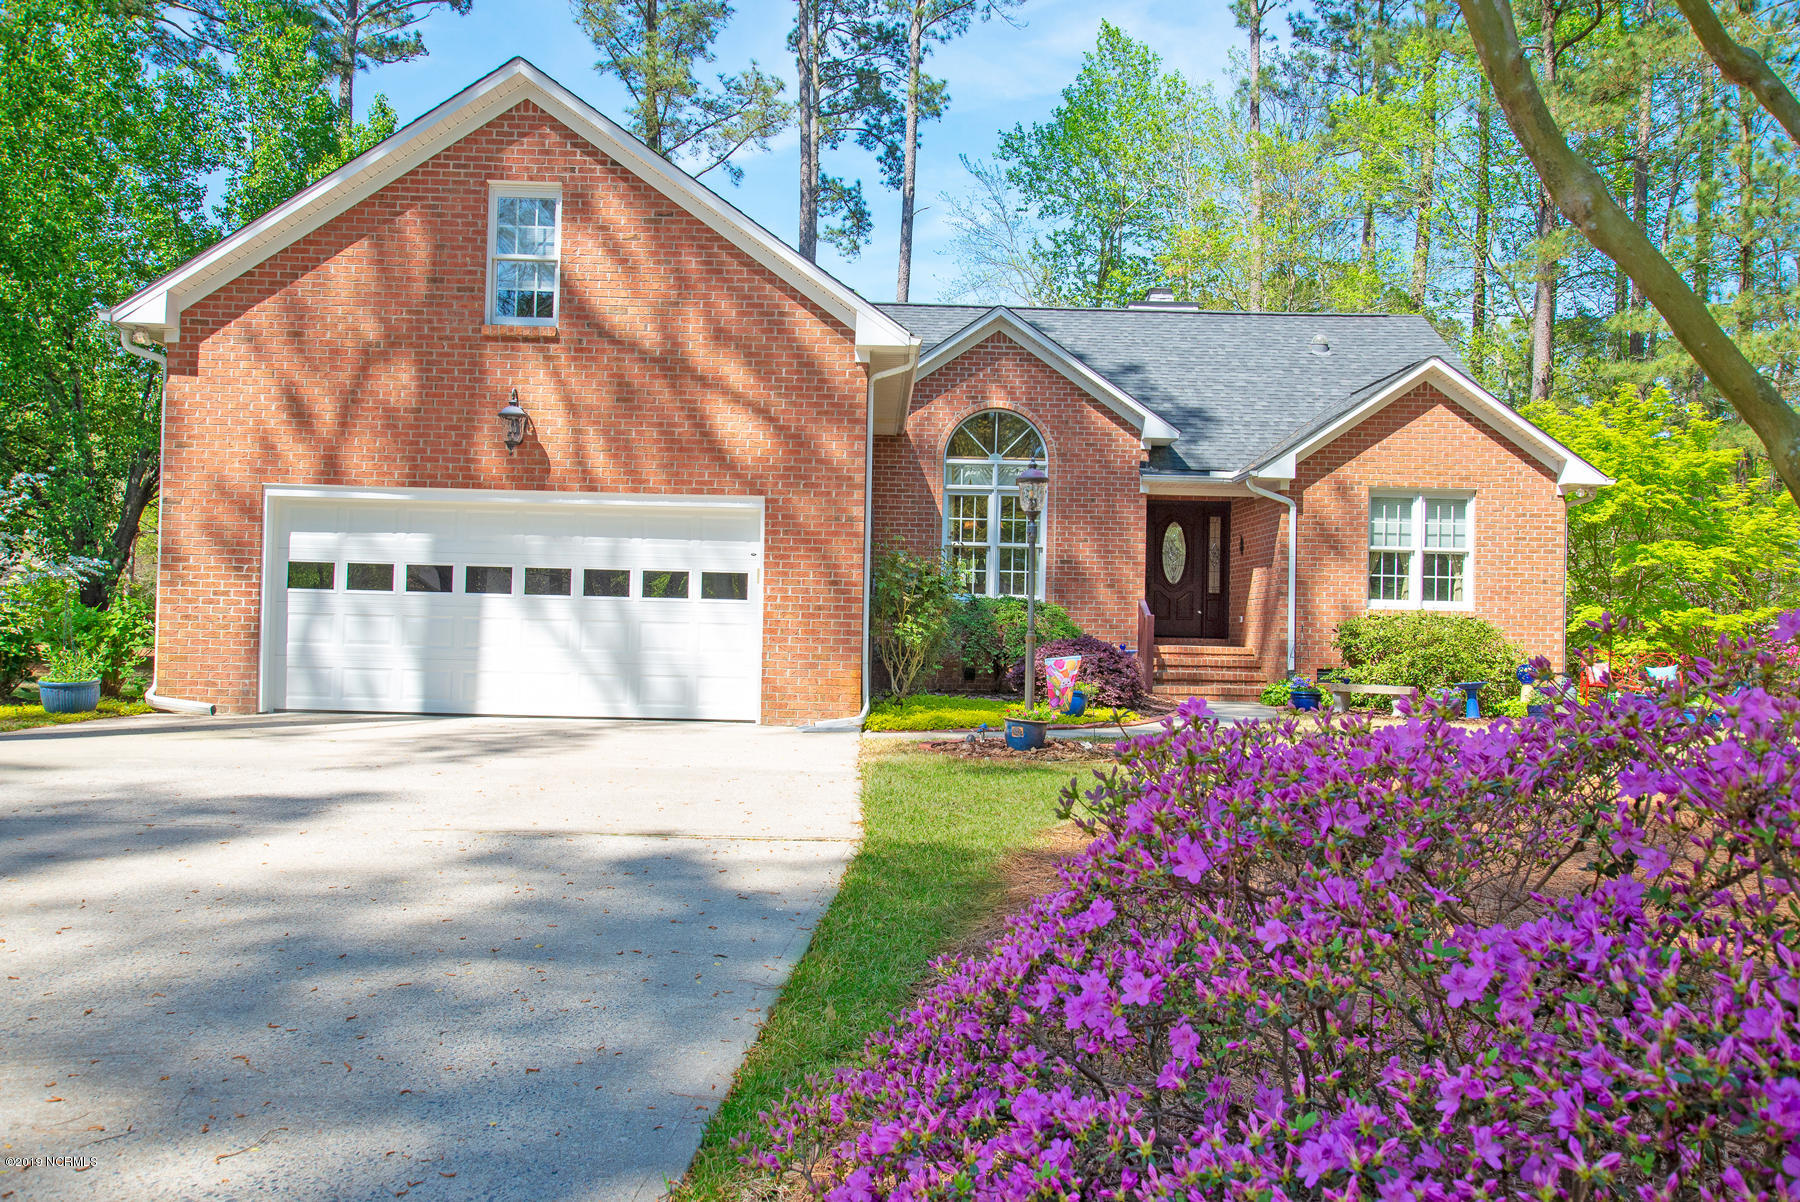 111 Trent Lane, Chocowinity, North Carolina, 3 Bedrooms Bedrooms, 10 Rooms Rooms,3 BathroomsBathrooms,Single family residence,For sale,Trent,100160101